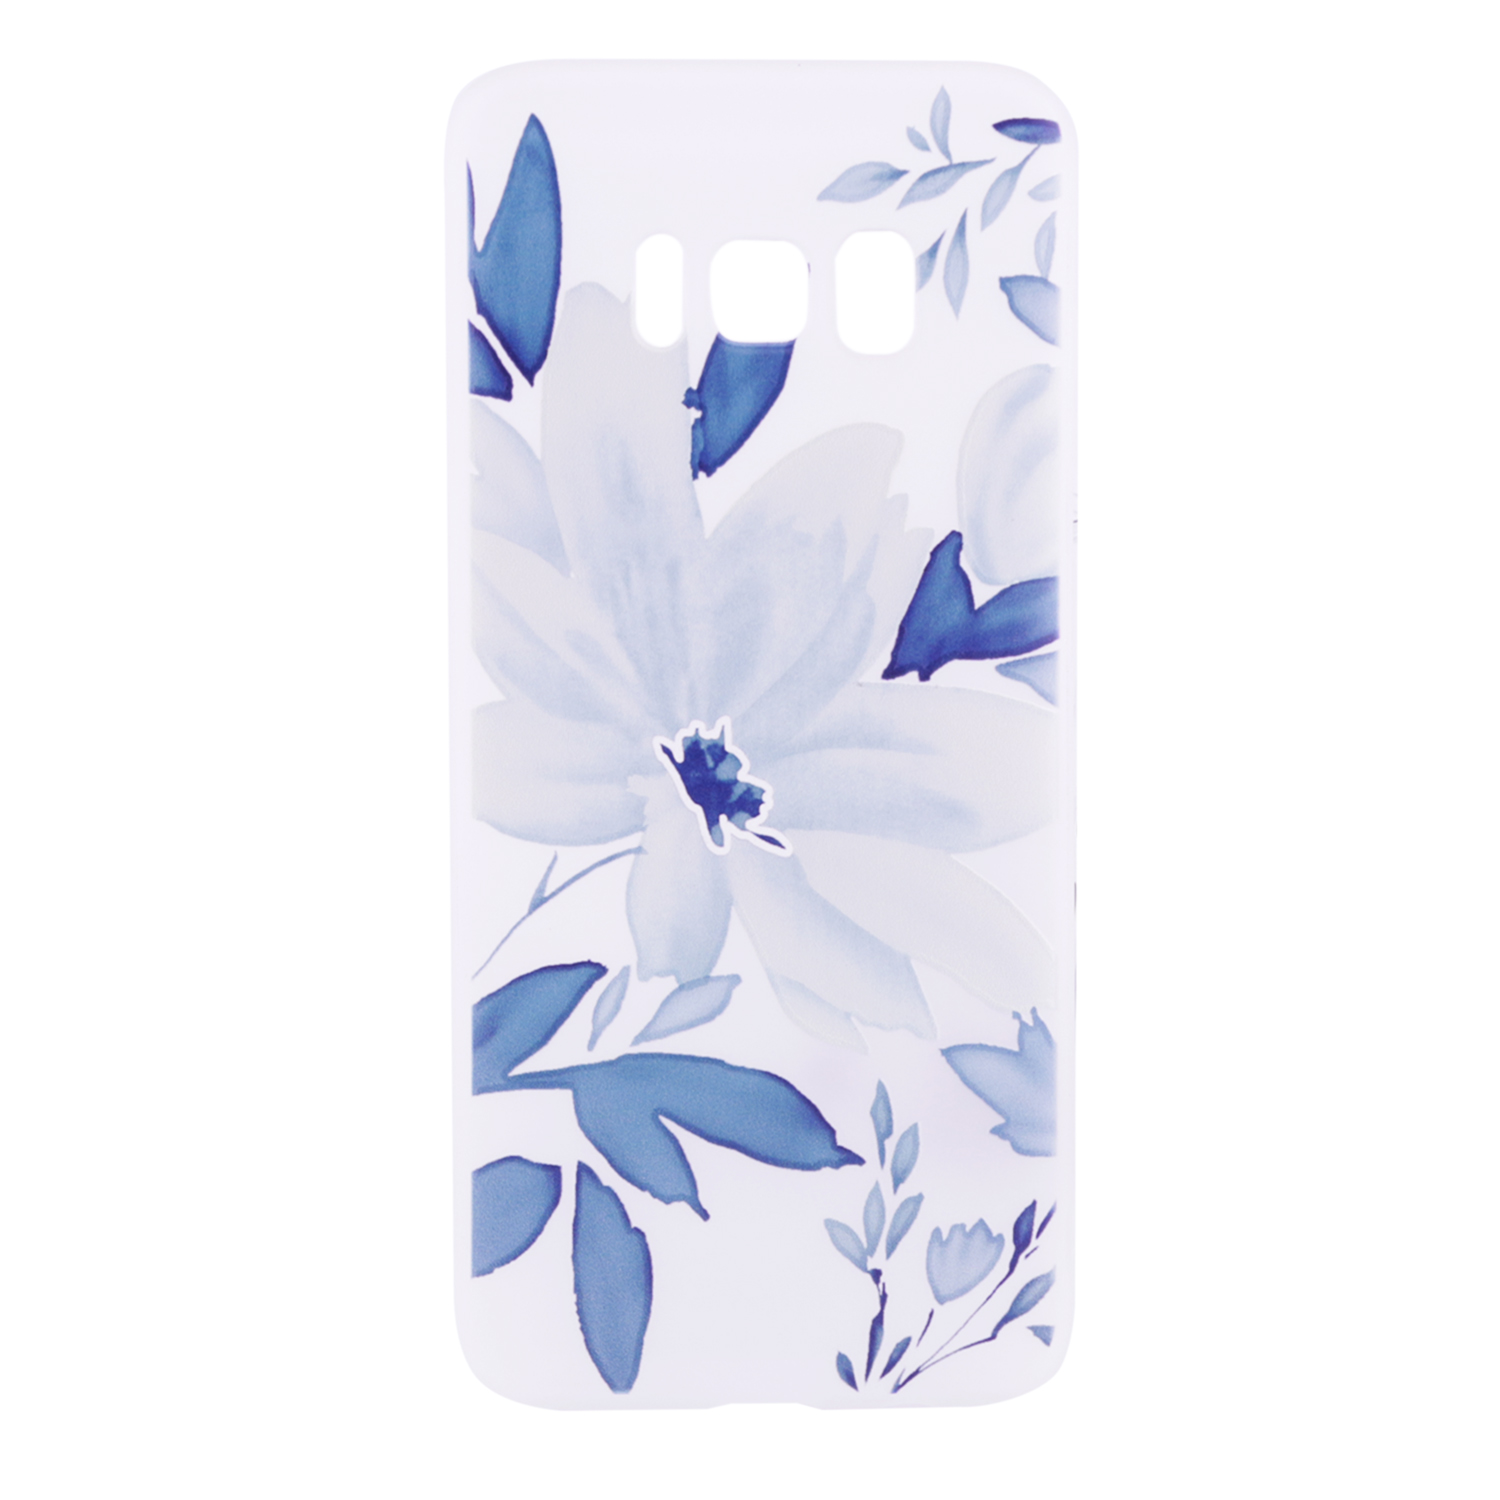 TPU чехол матовый soft touch color для Samsung Galaxy S8 Plus (G955)